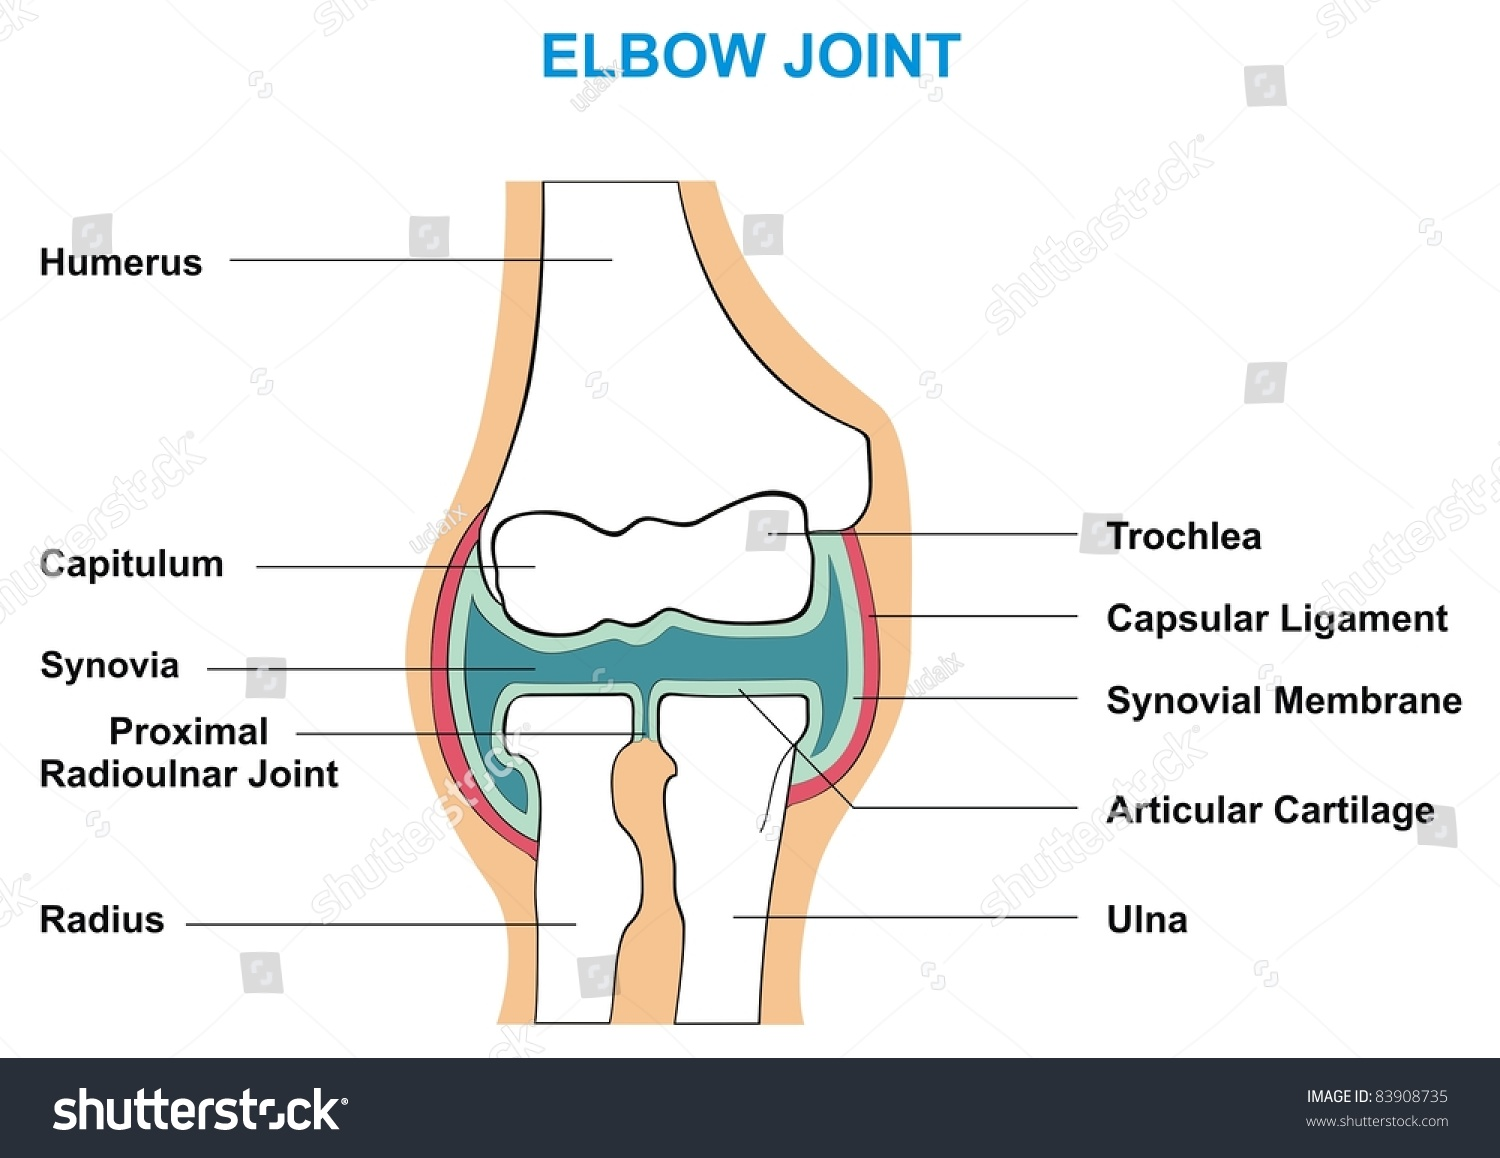 Elbow Joint Cross Section Showing Major Parts Stockfoto Jetzt